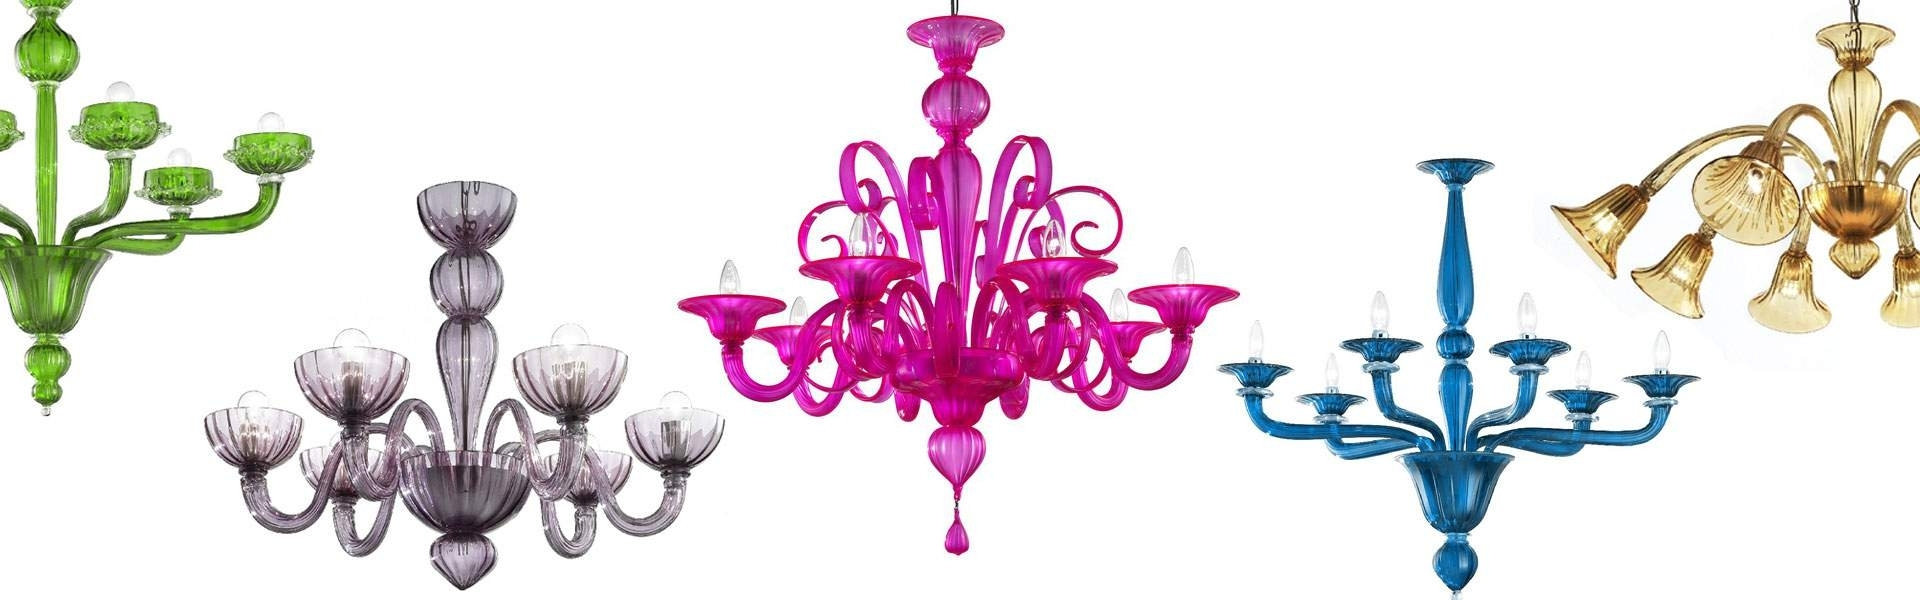 Murano Glass Chandeliers For Sale From Italy Within Coloured Chandeliers (View 11 of 20)